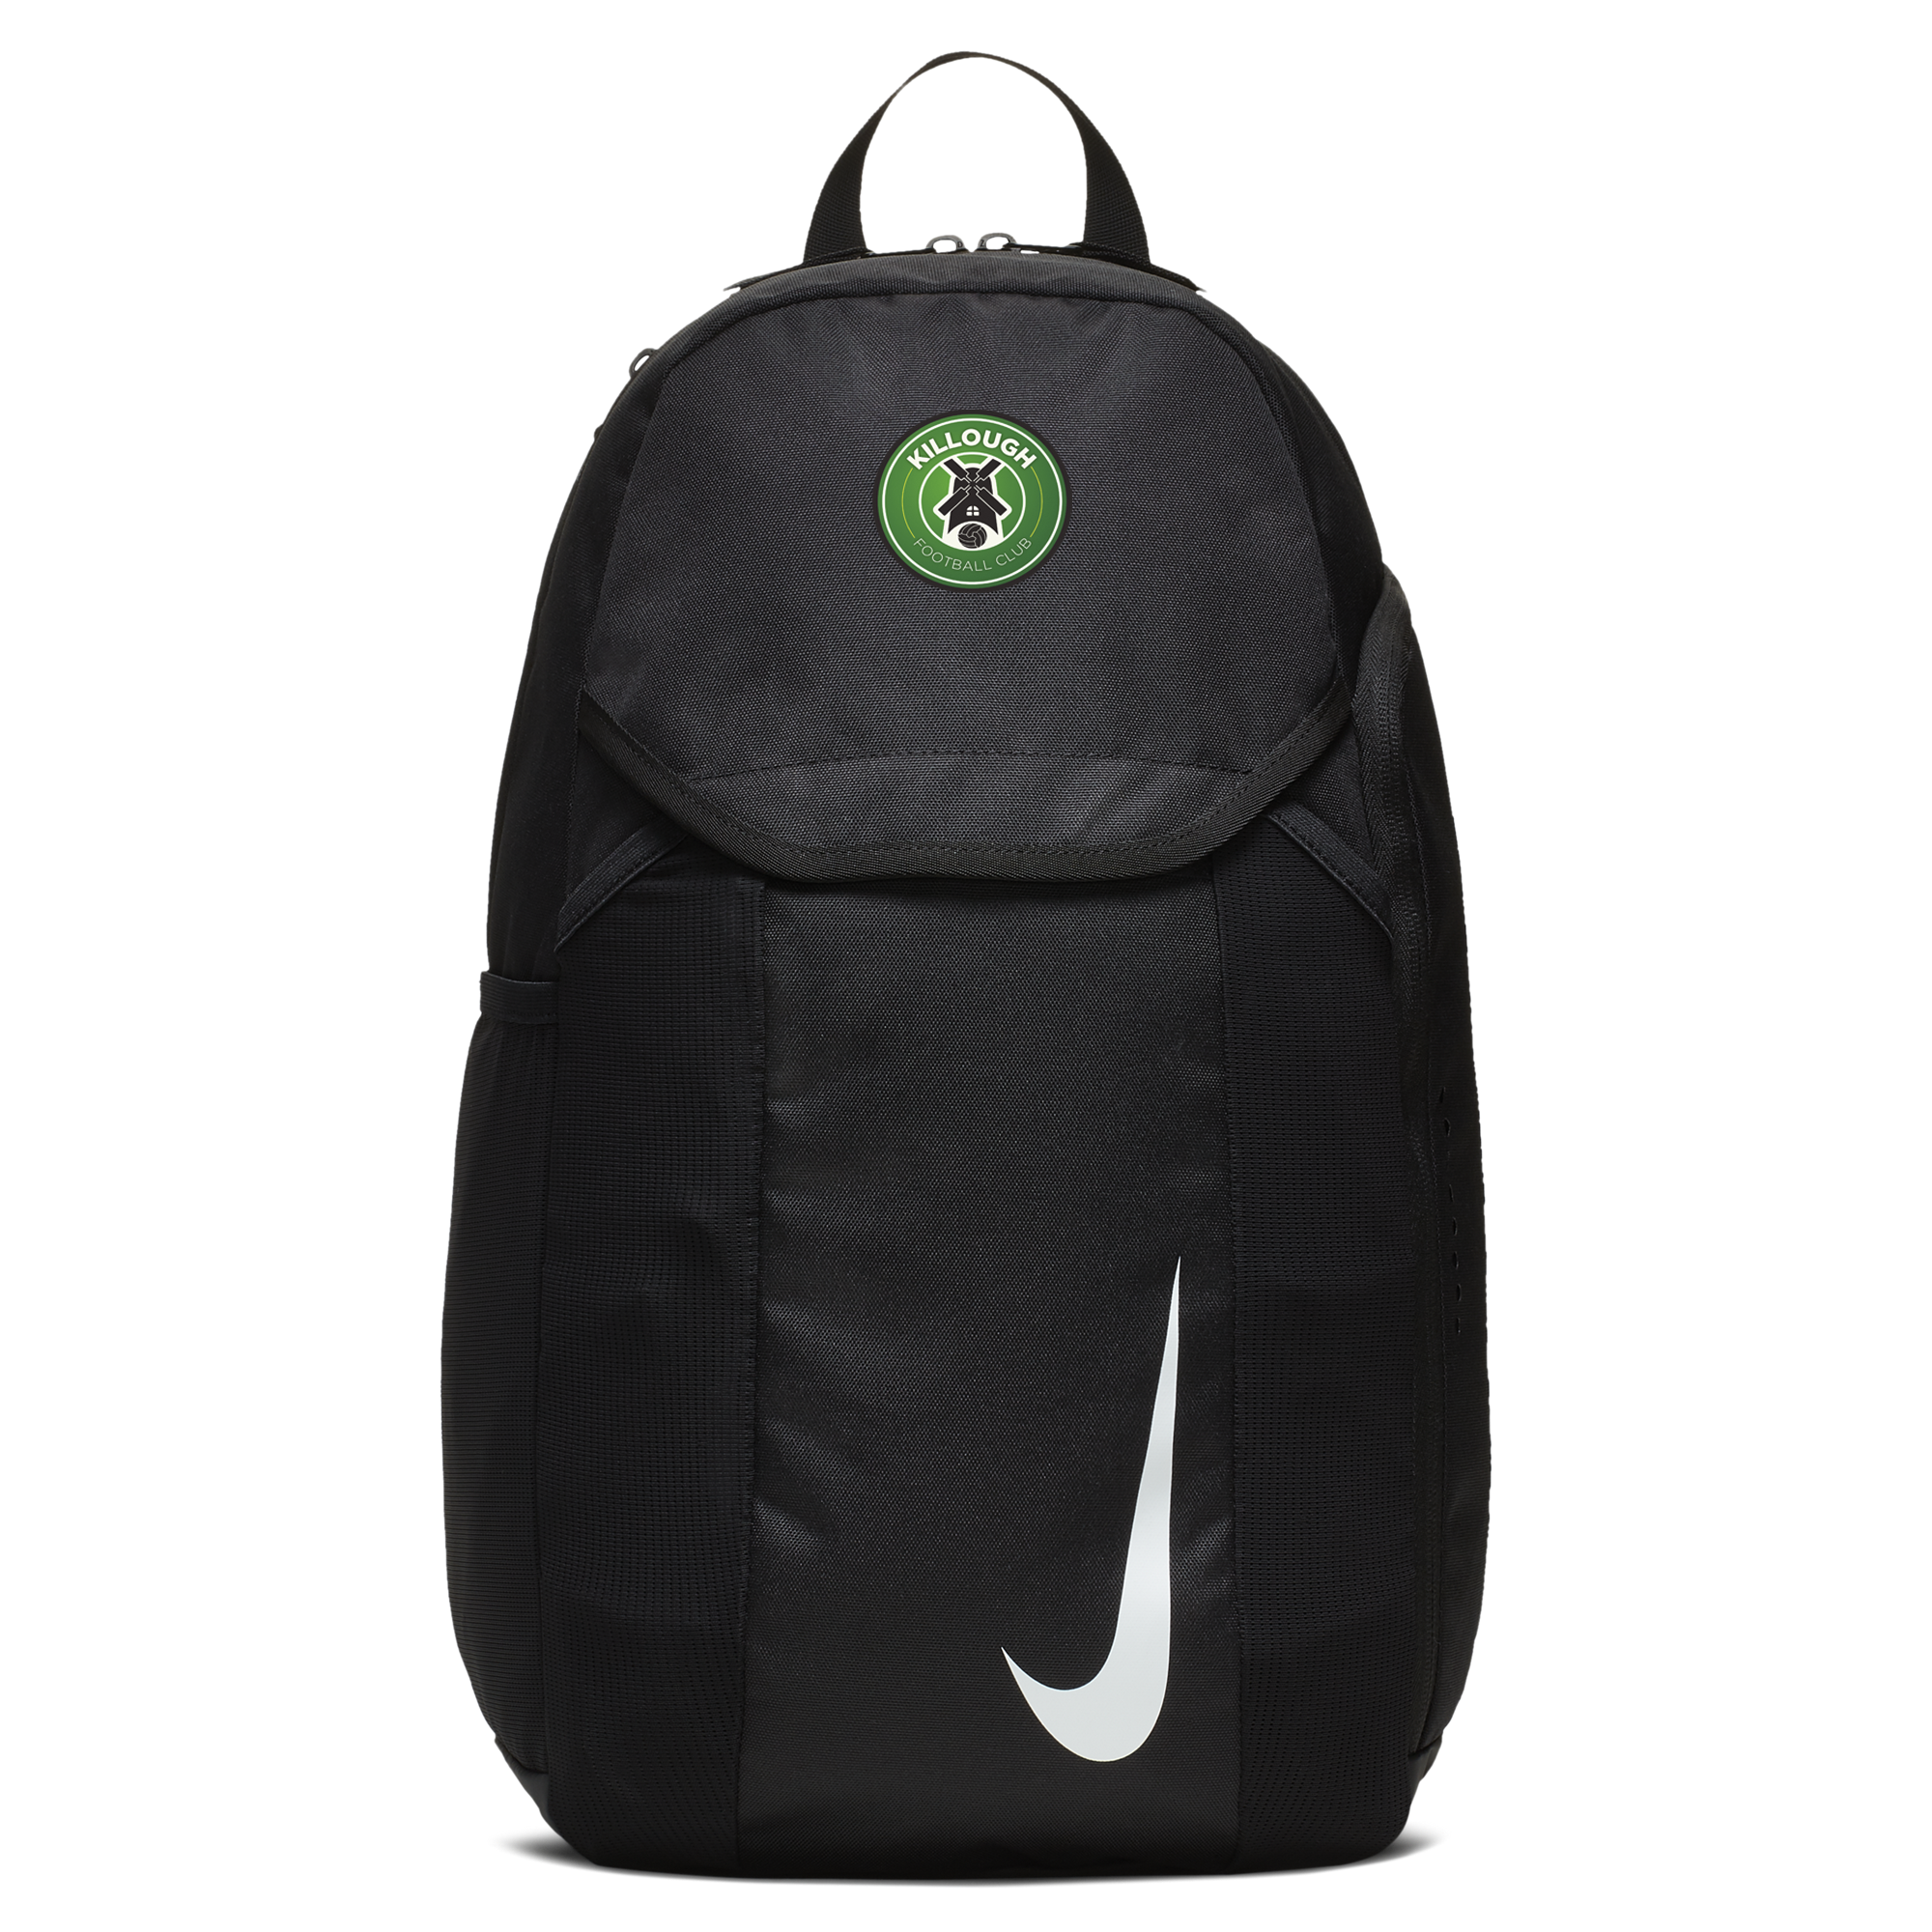 killough fc backpack 36624 p